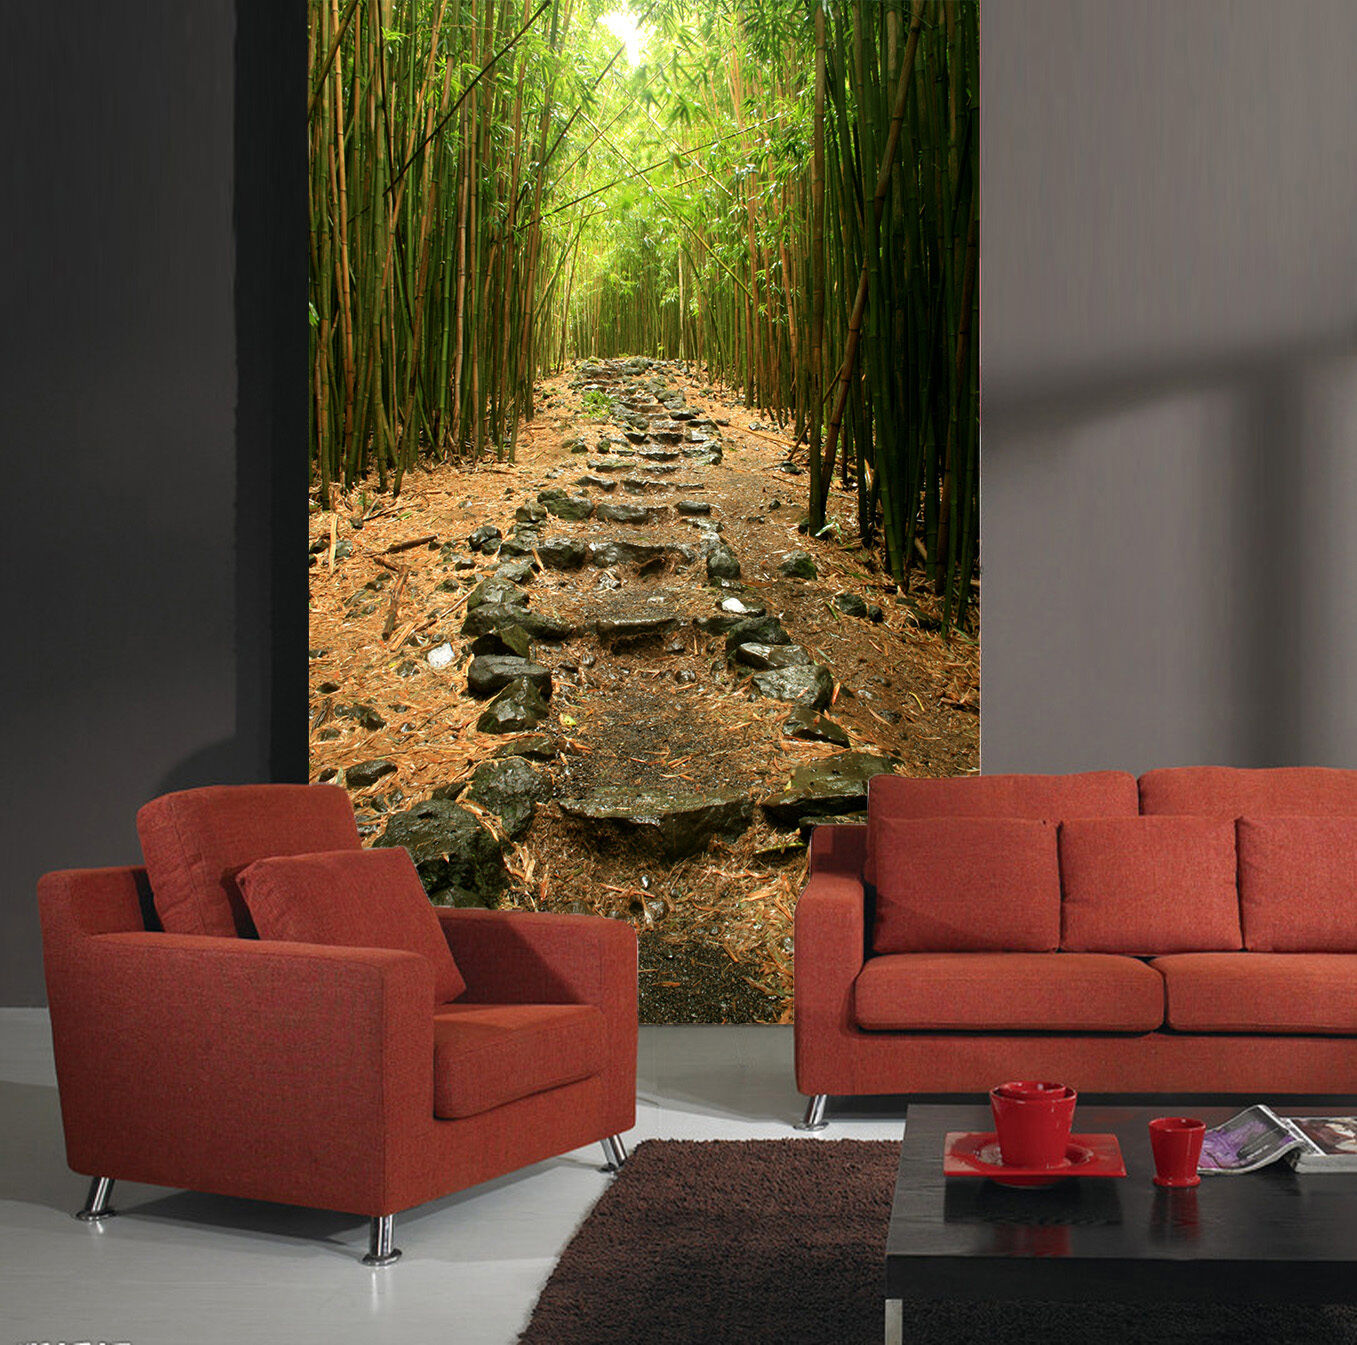 3D bamboo forest Dirt road Wall Paper Print Decal Wall Deco Indoor wall Mural